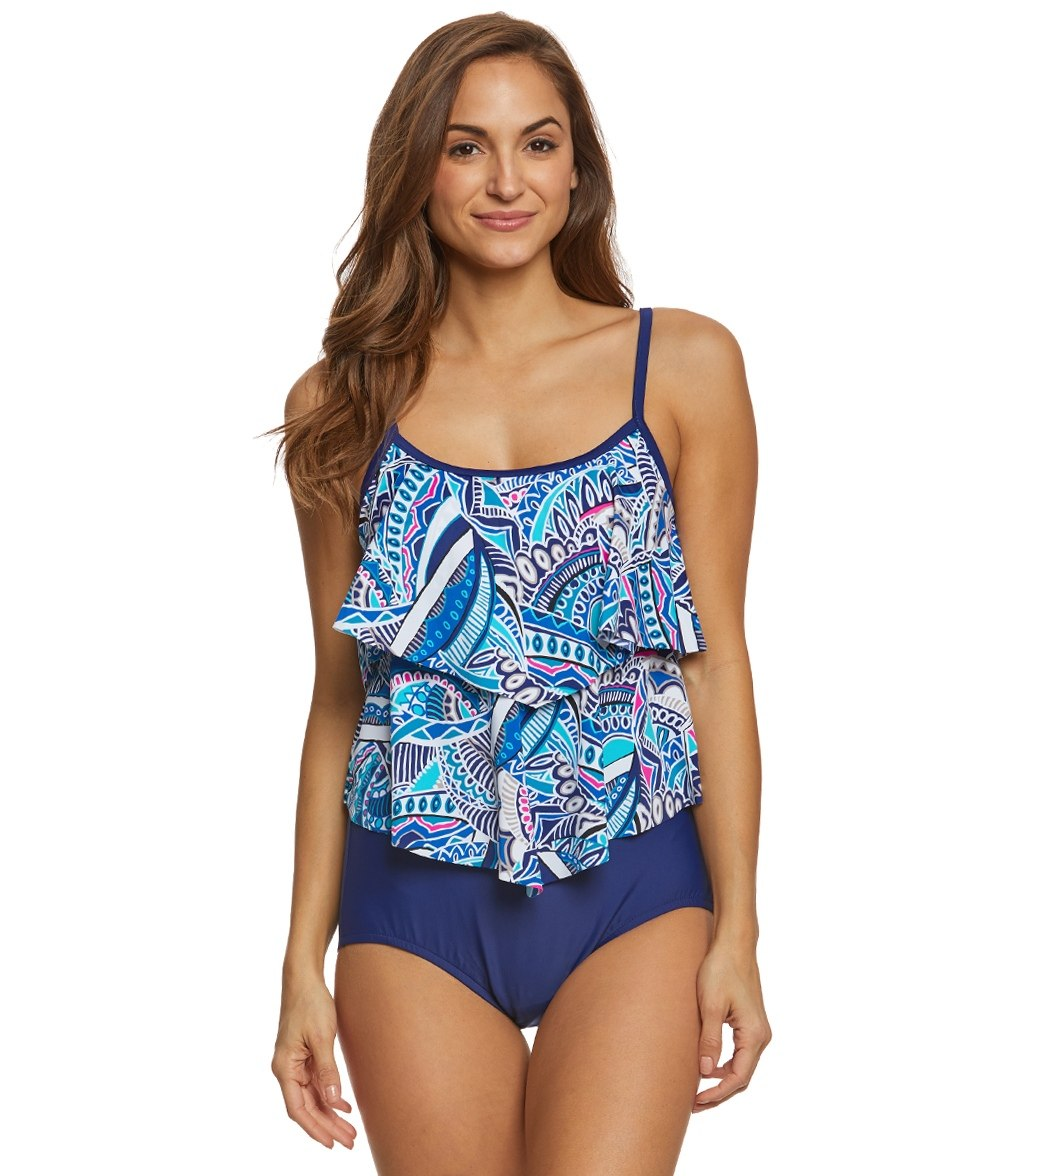 67d9cdeff6 Maxine Island Days Double Tier One Piece Swimsuit at SwimOutlet.com - Free  Shipping